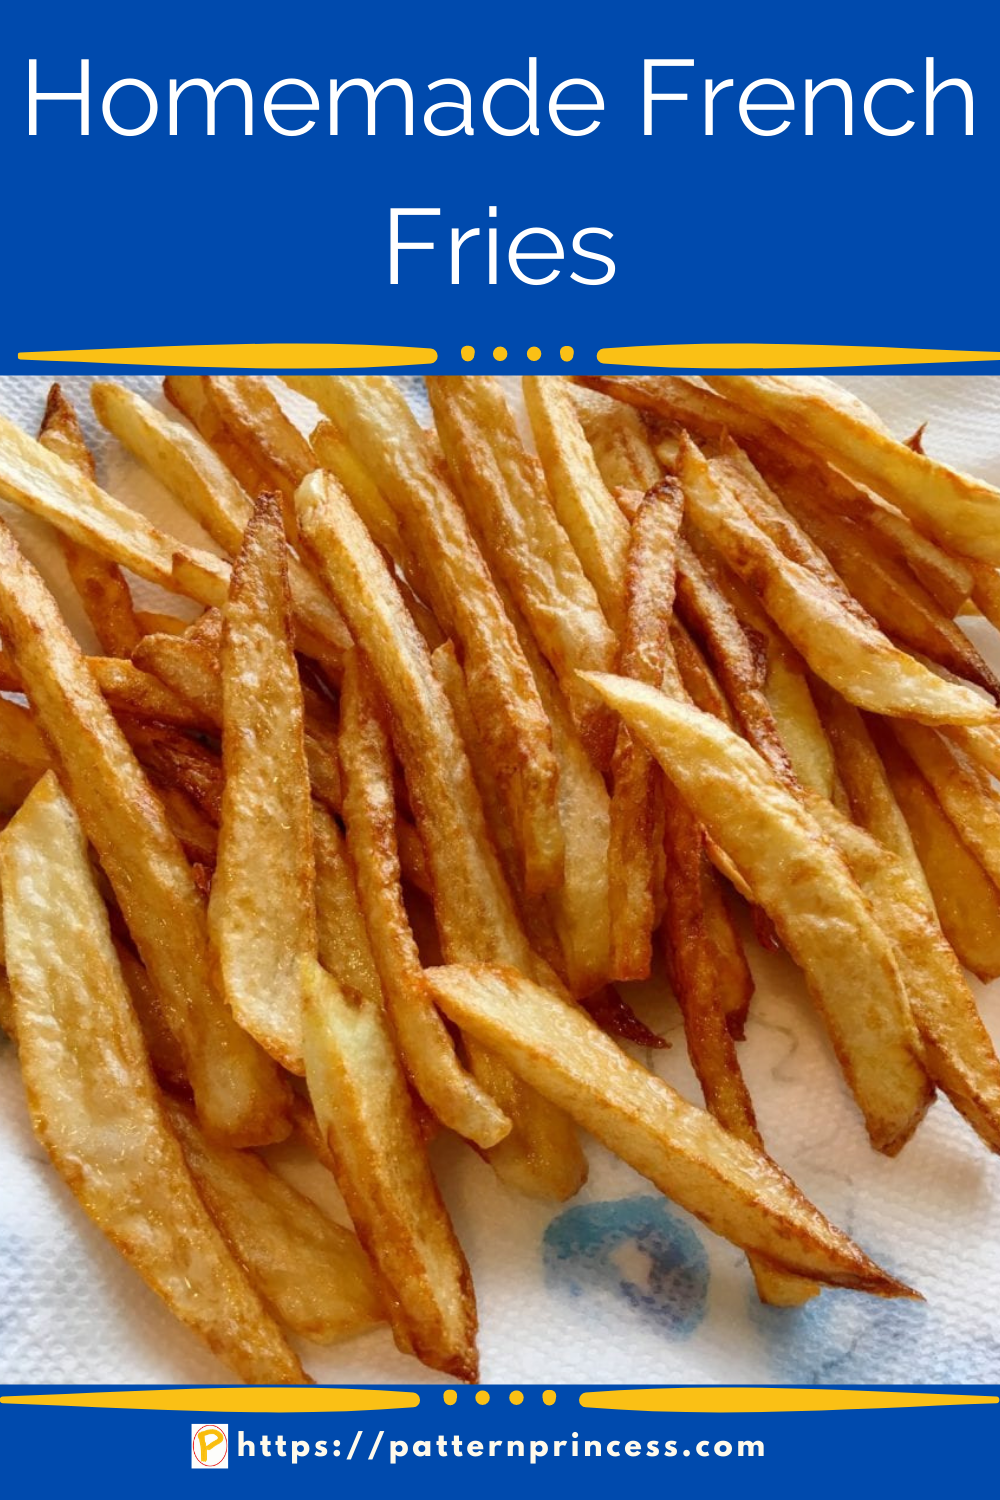 Homemade French Fries